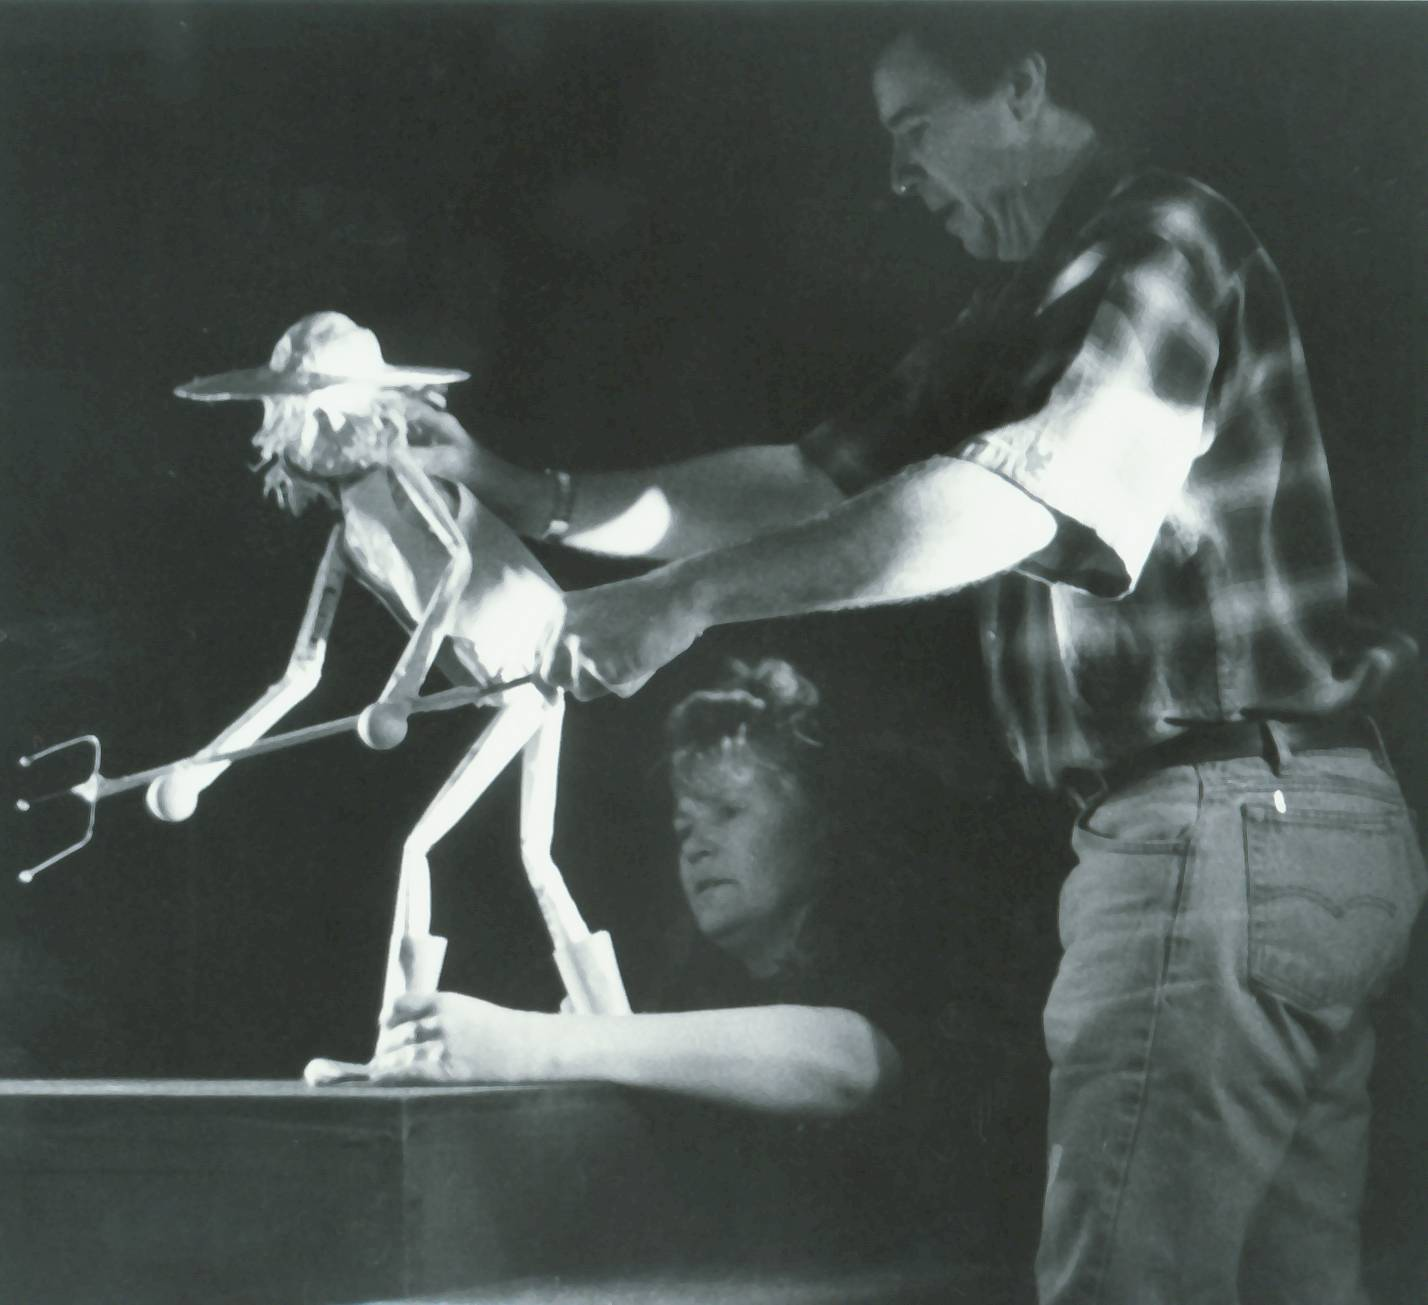 Randal Metz at Muppets masters class with Hester Schell